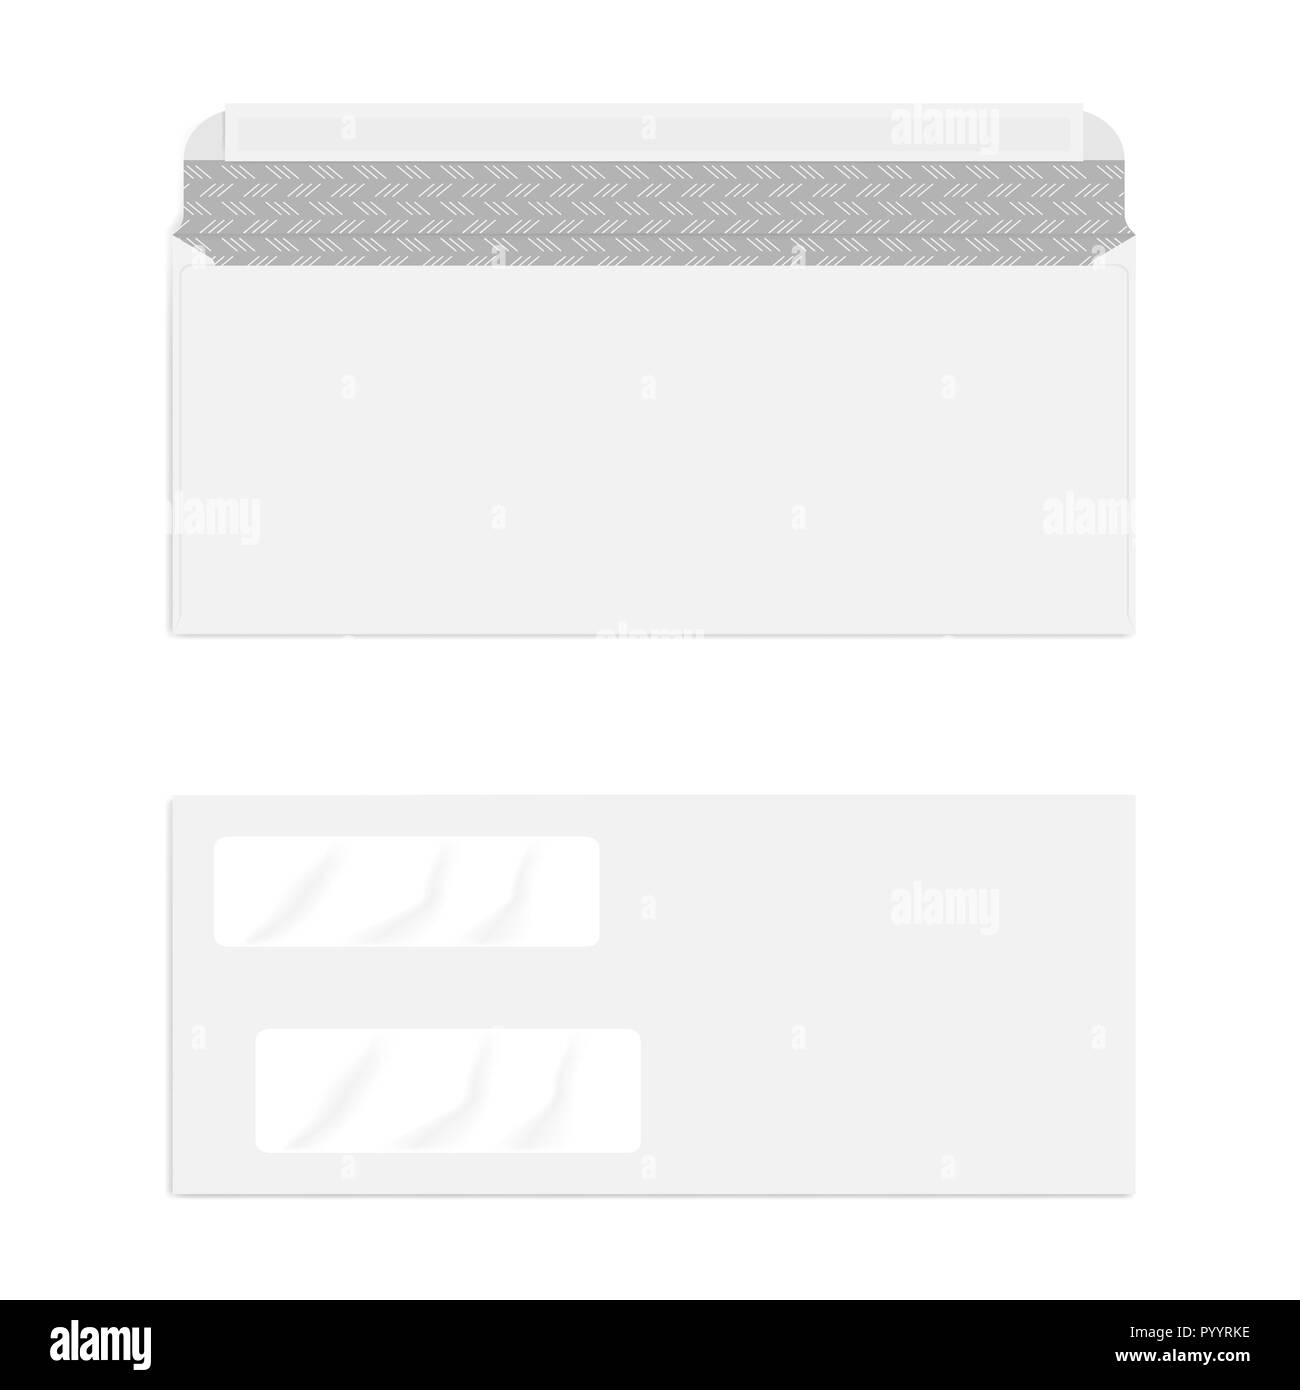 da8405388ca7 Blank double window self seal check envelope with security pattern isolated  on white background